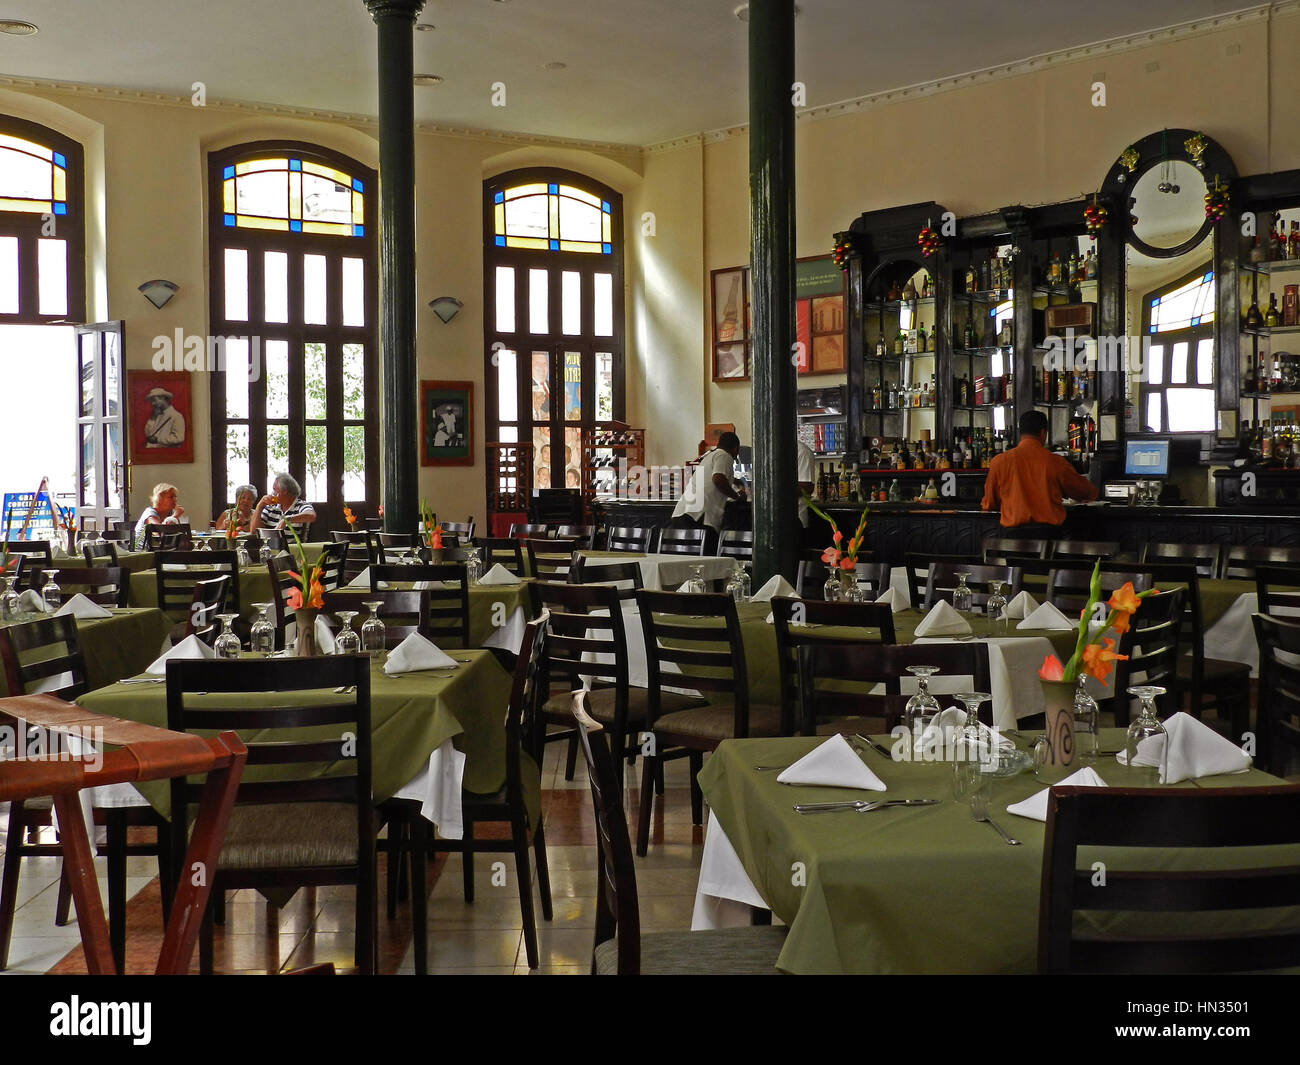 Dining Room And Bar Of The Cafe Factoria Plaza Vieja Old Havana Cuba